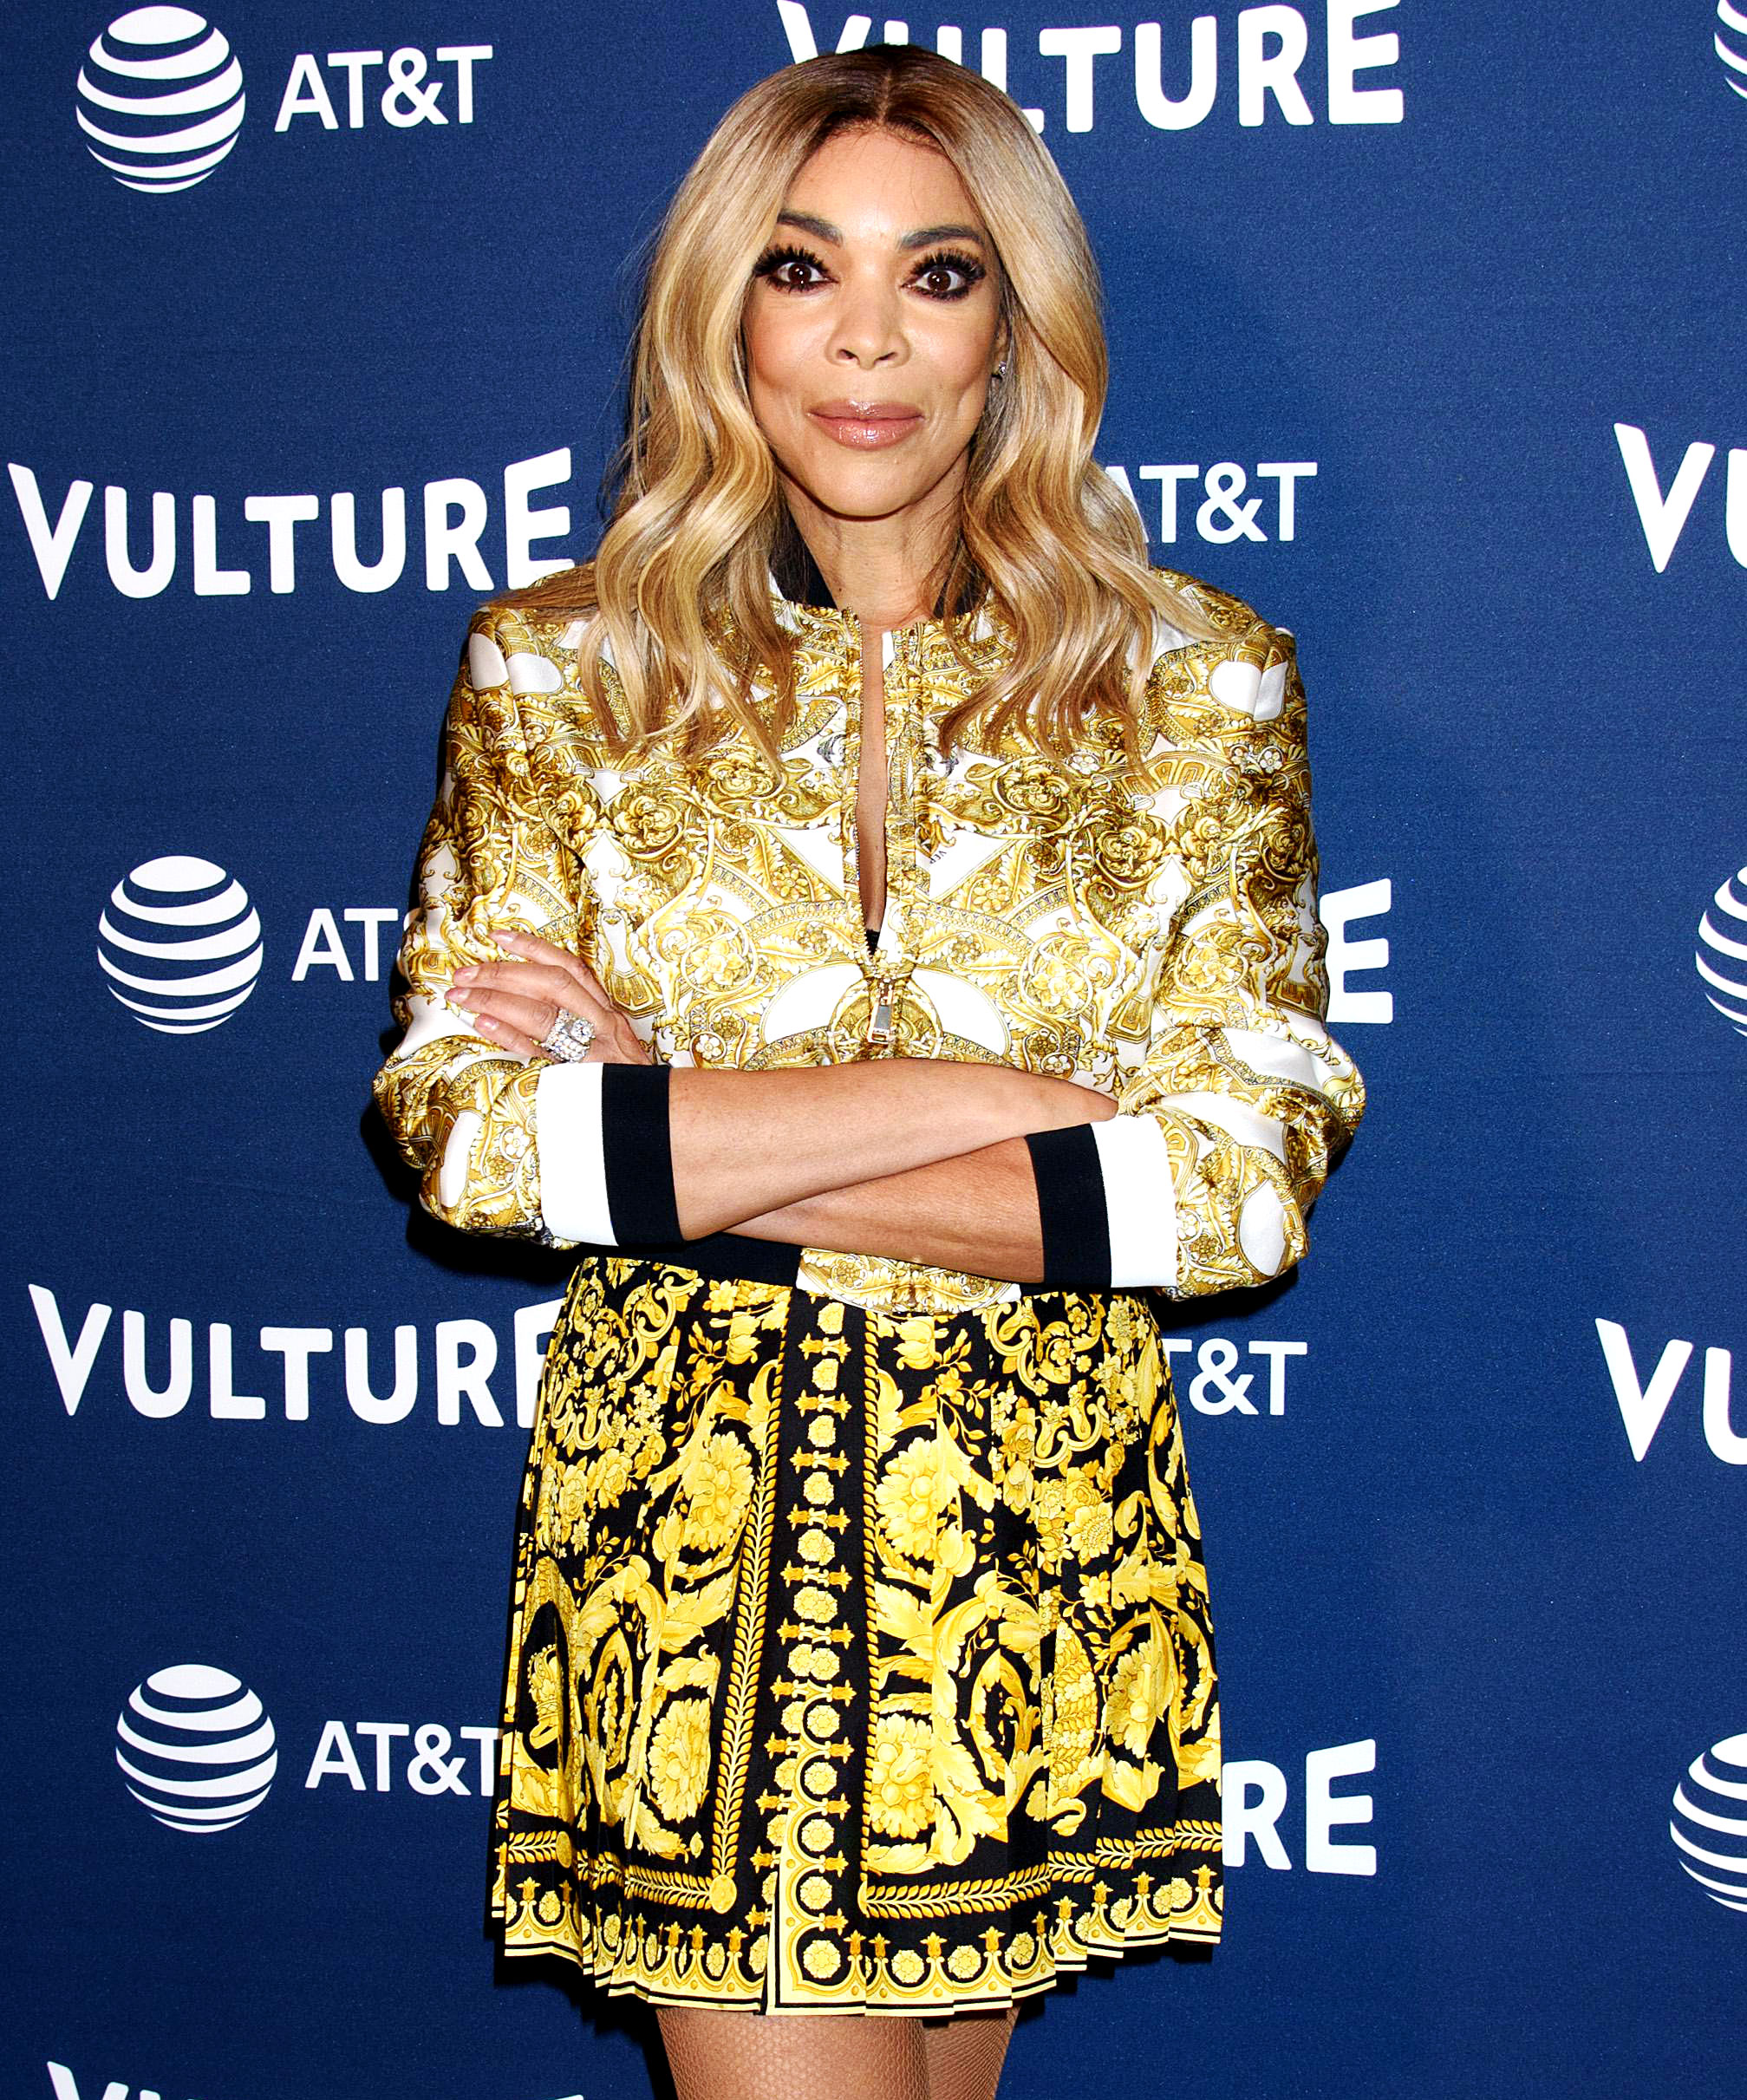 Wendy Williams Healing to Do After Filing for Divorce - Wendy Williams at 2018 VultureFest held at Milk Studio on May 19, 2018 in New York City.